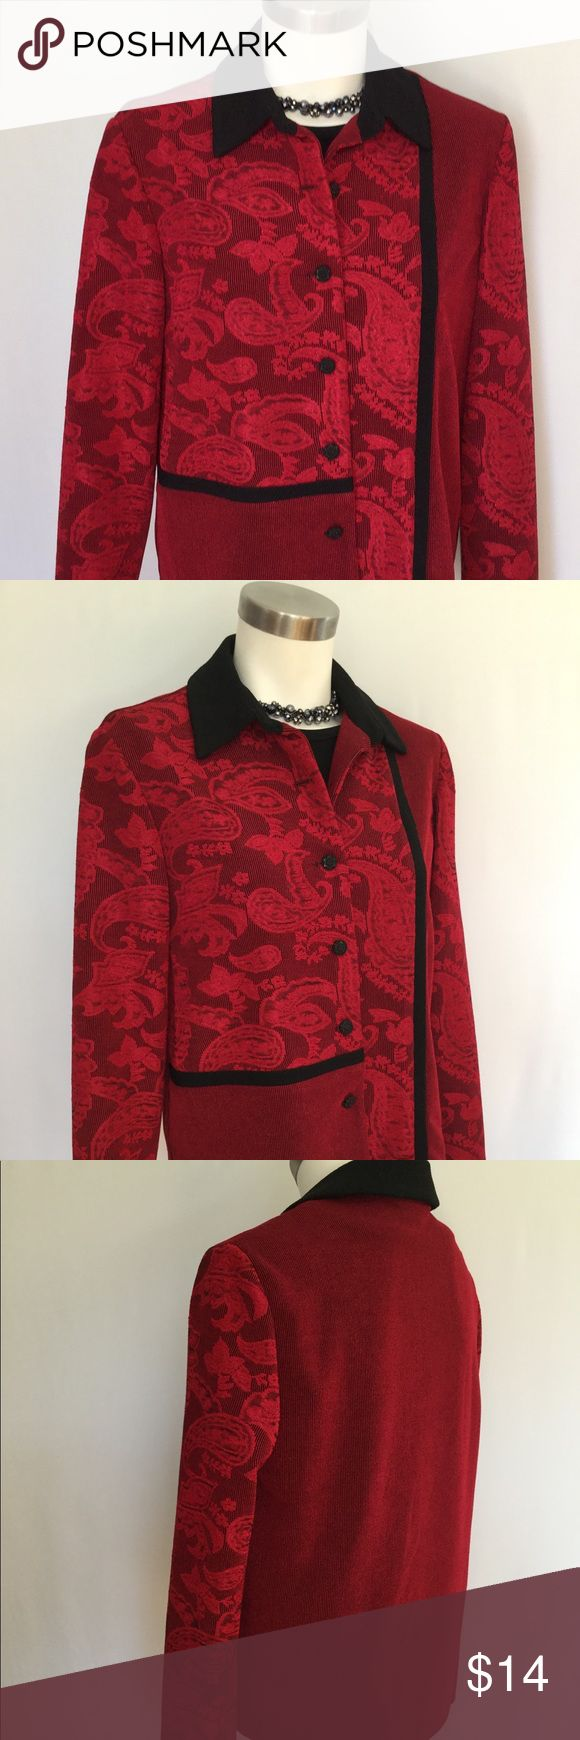 Coldwater Creek Blazer Jacket Coldwater Creek Jacket Blazer. Festive red and black. Knit fabric with a little stretch. Great Condition. Size 6 Coldwater Creek Jackets & Coats Blazers